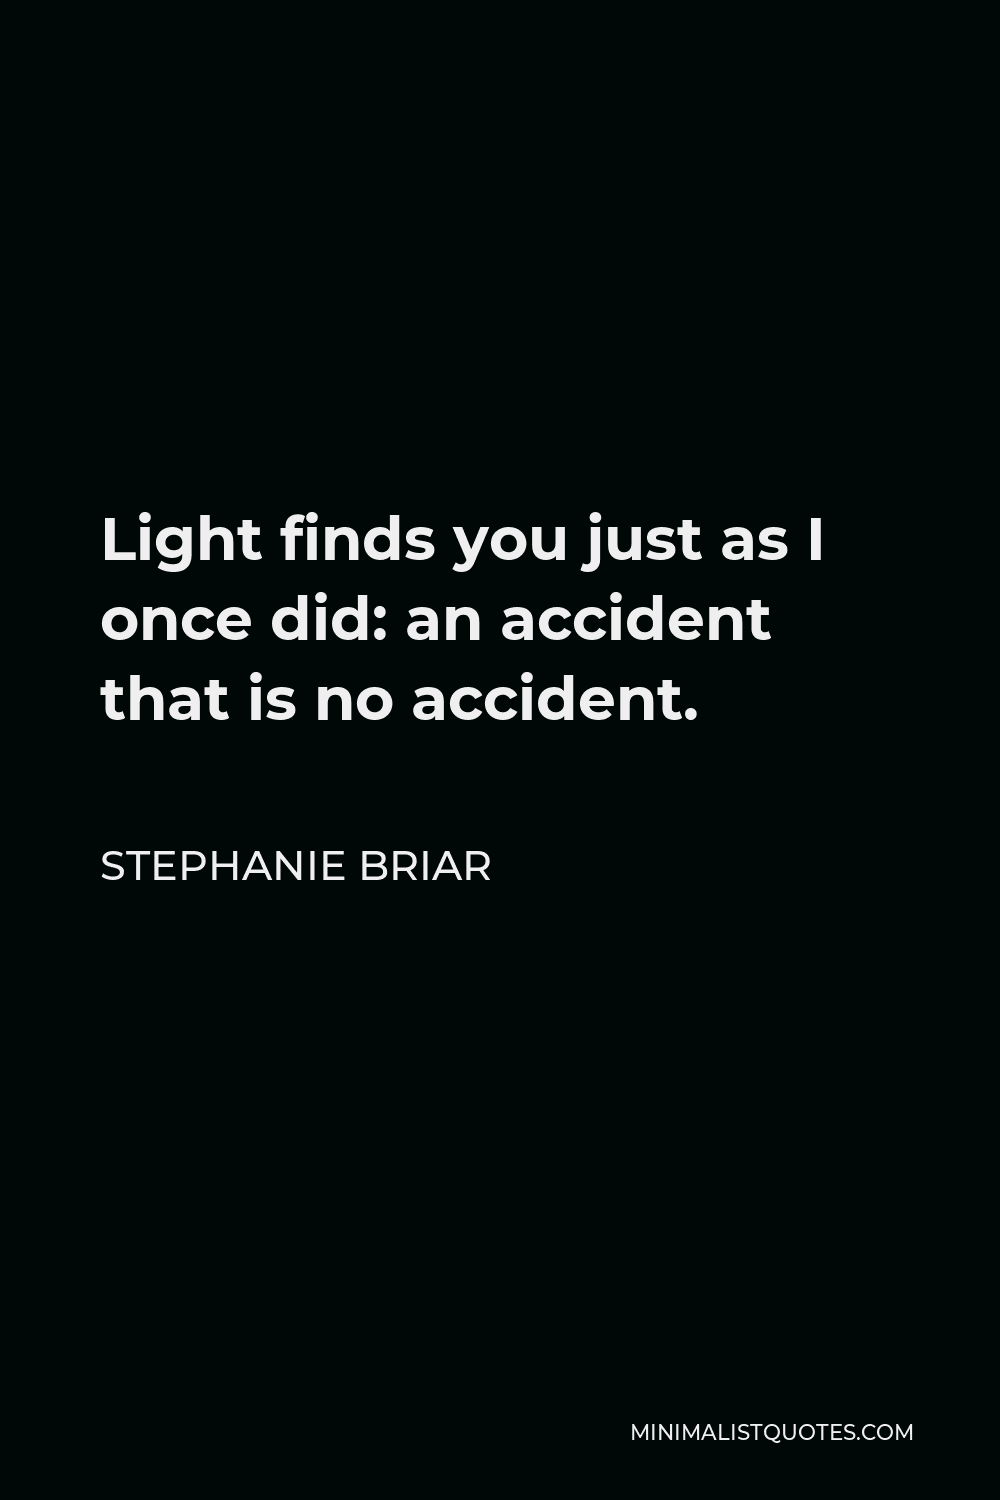 Stephanie Briar Quote - Light finds you just as I once did: an accident that is no accident.